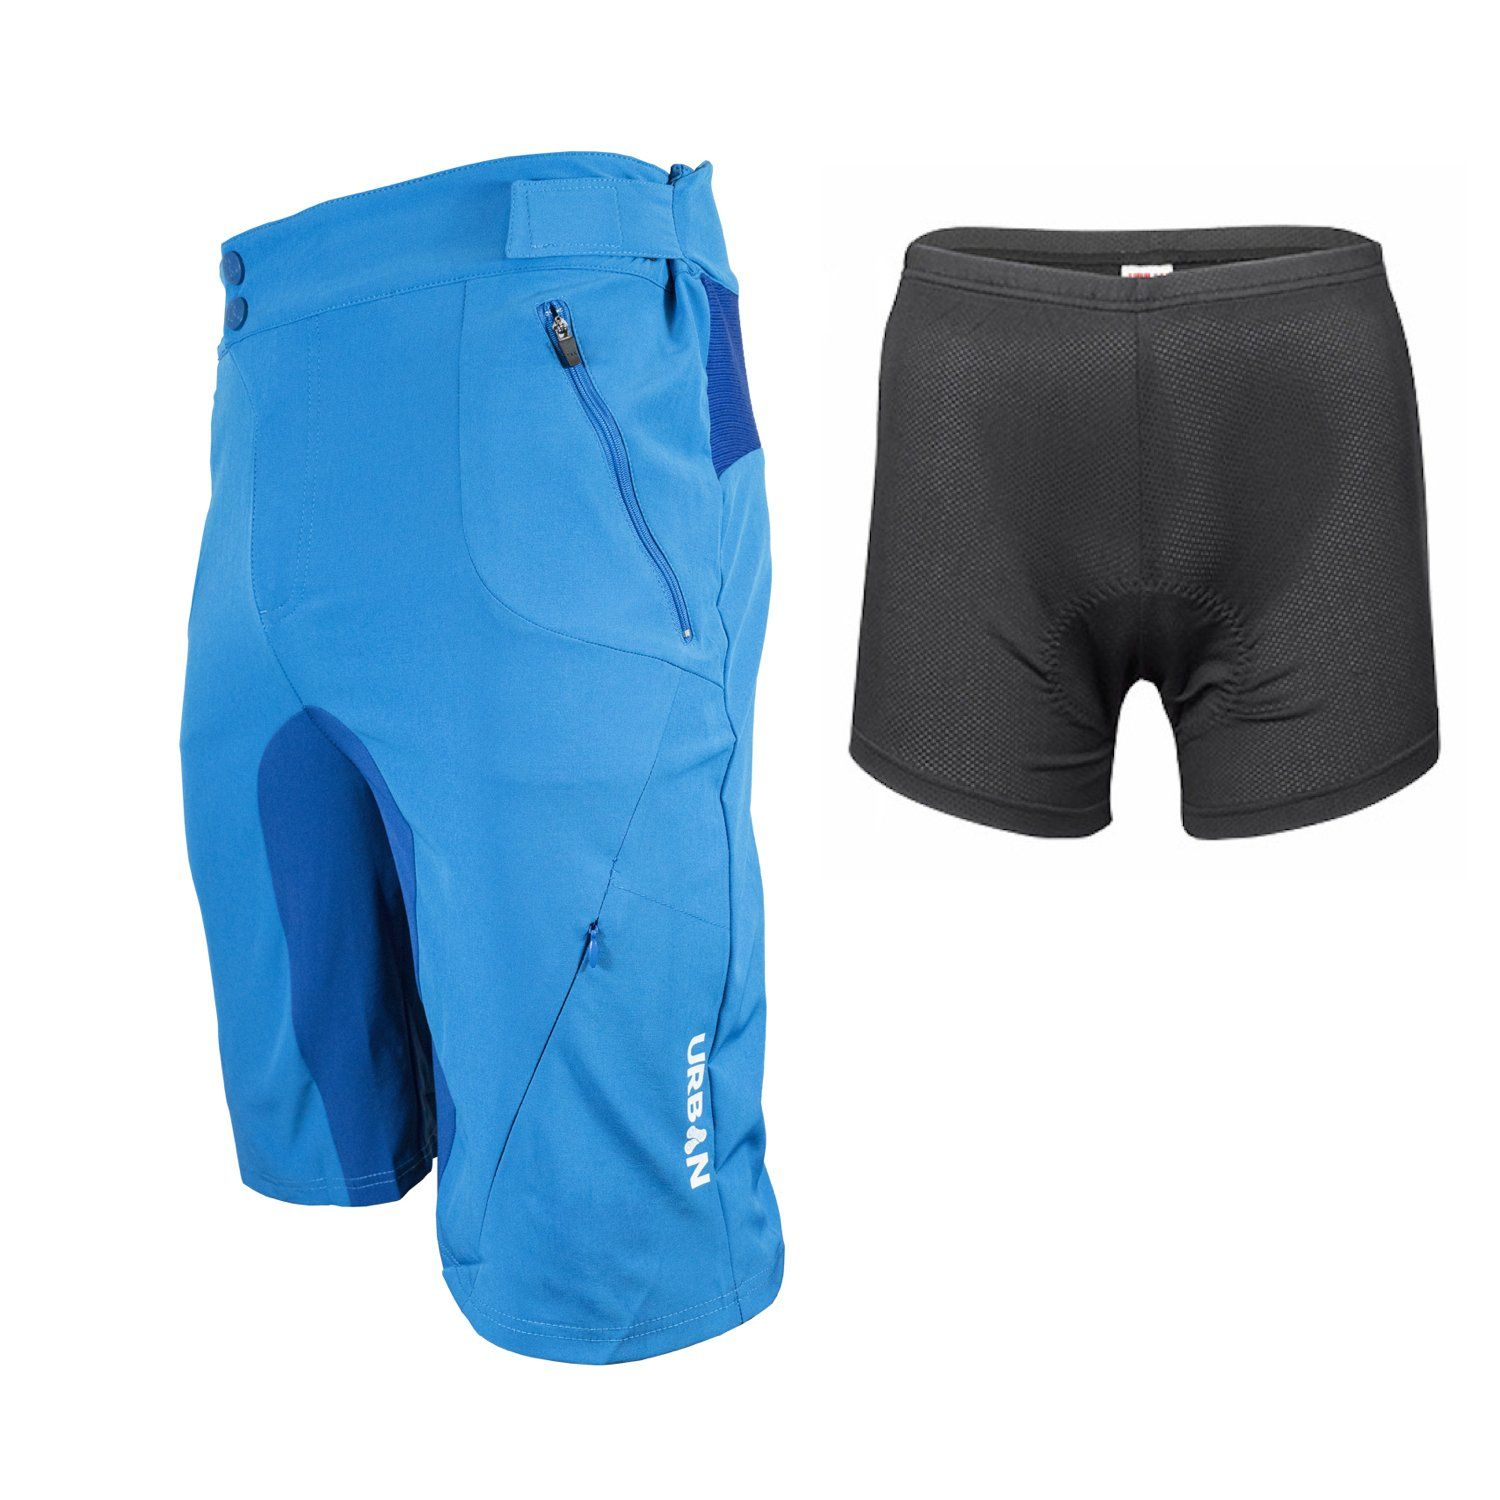 FLEX MTB Trail Shorts - Flex Soft Shell Mountain Bike Shorts with Zip  Pockets and Vents 0681bc424